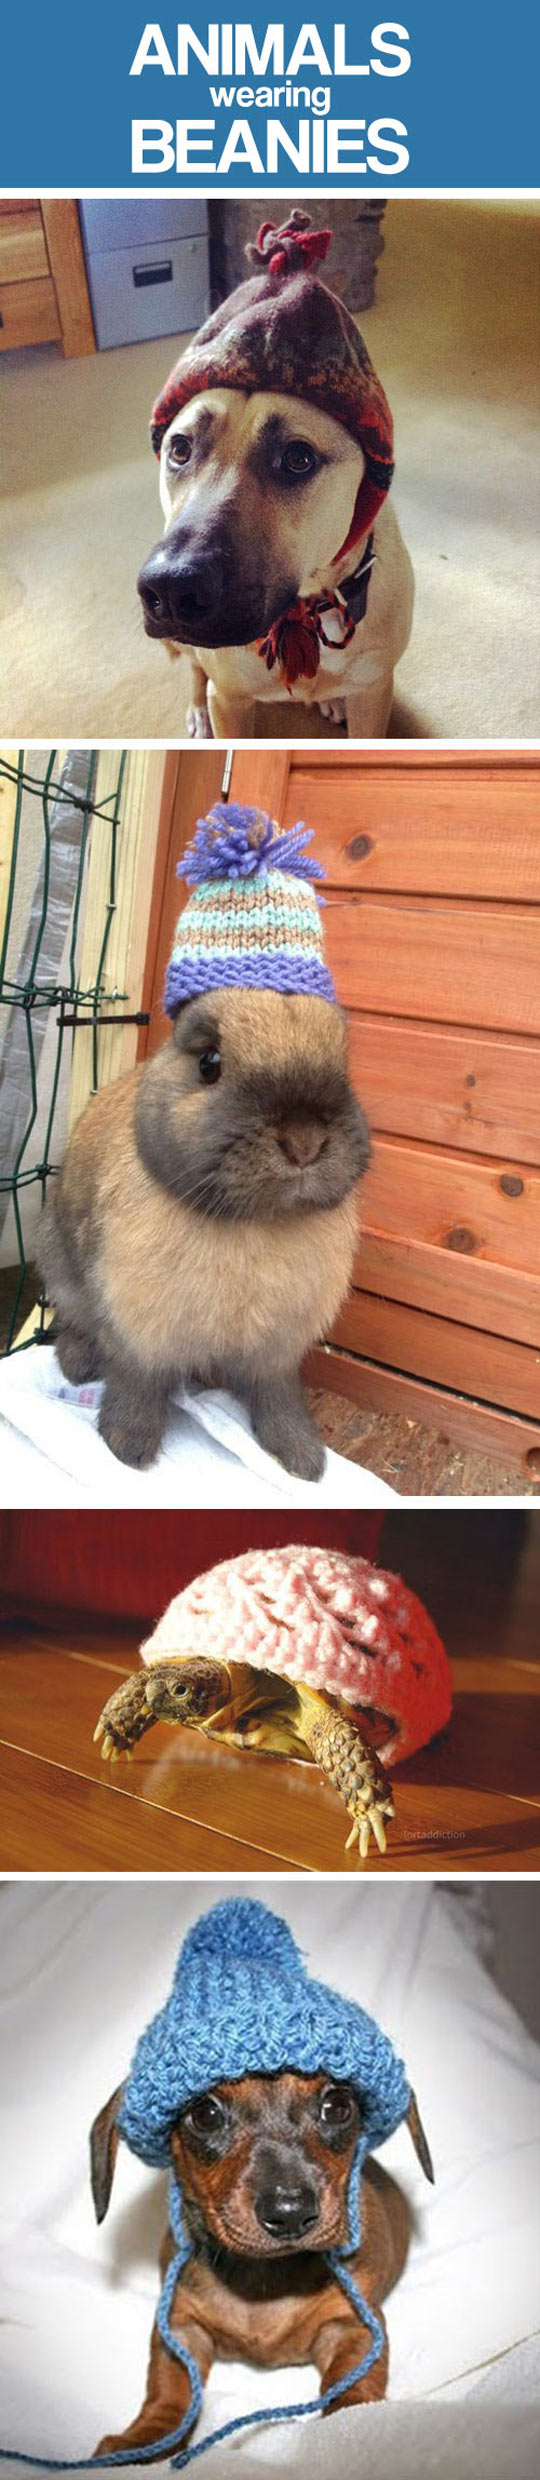 funny-animals-wearing-beanies-compilation